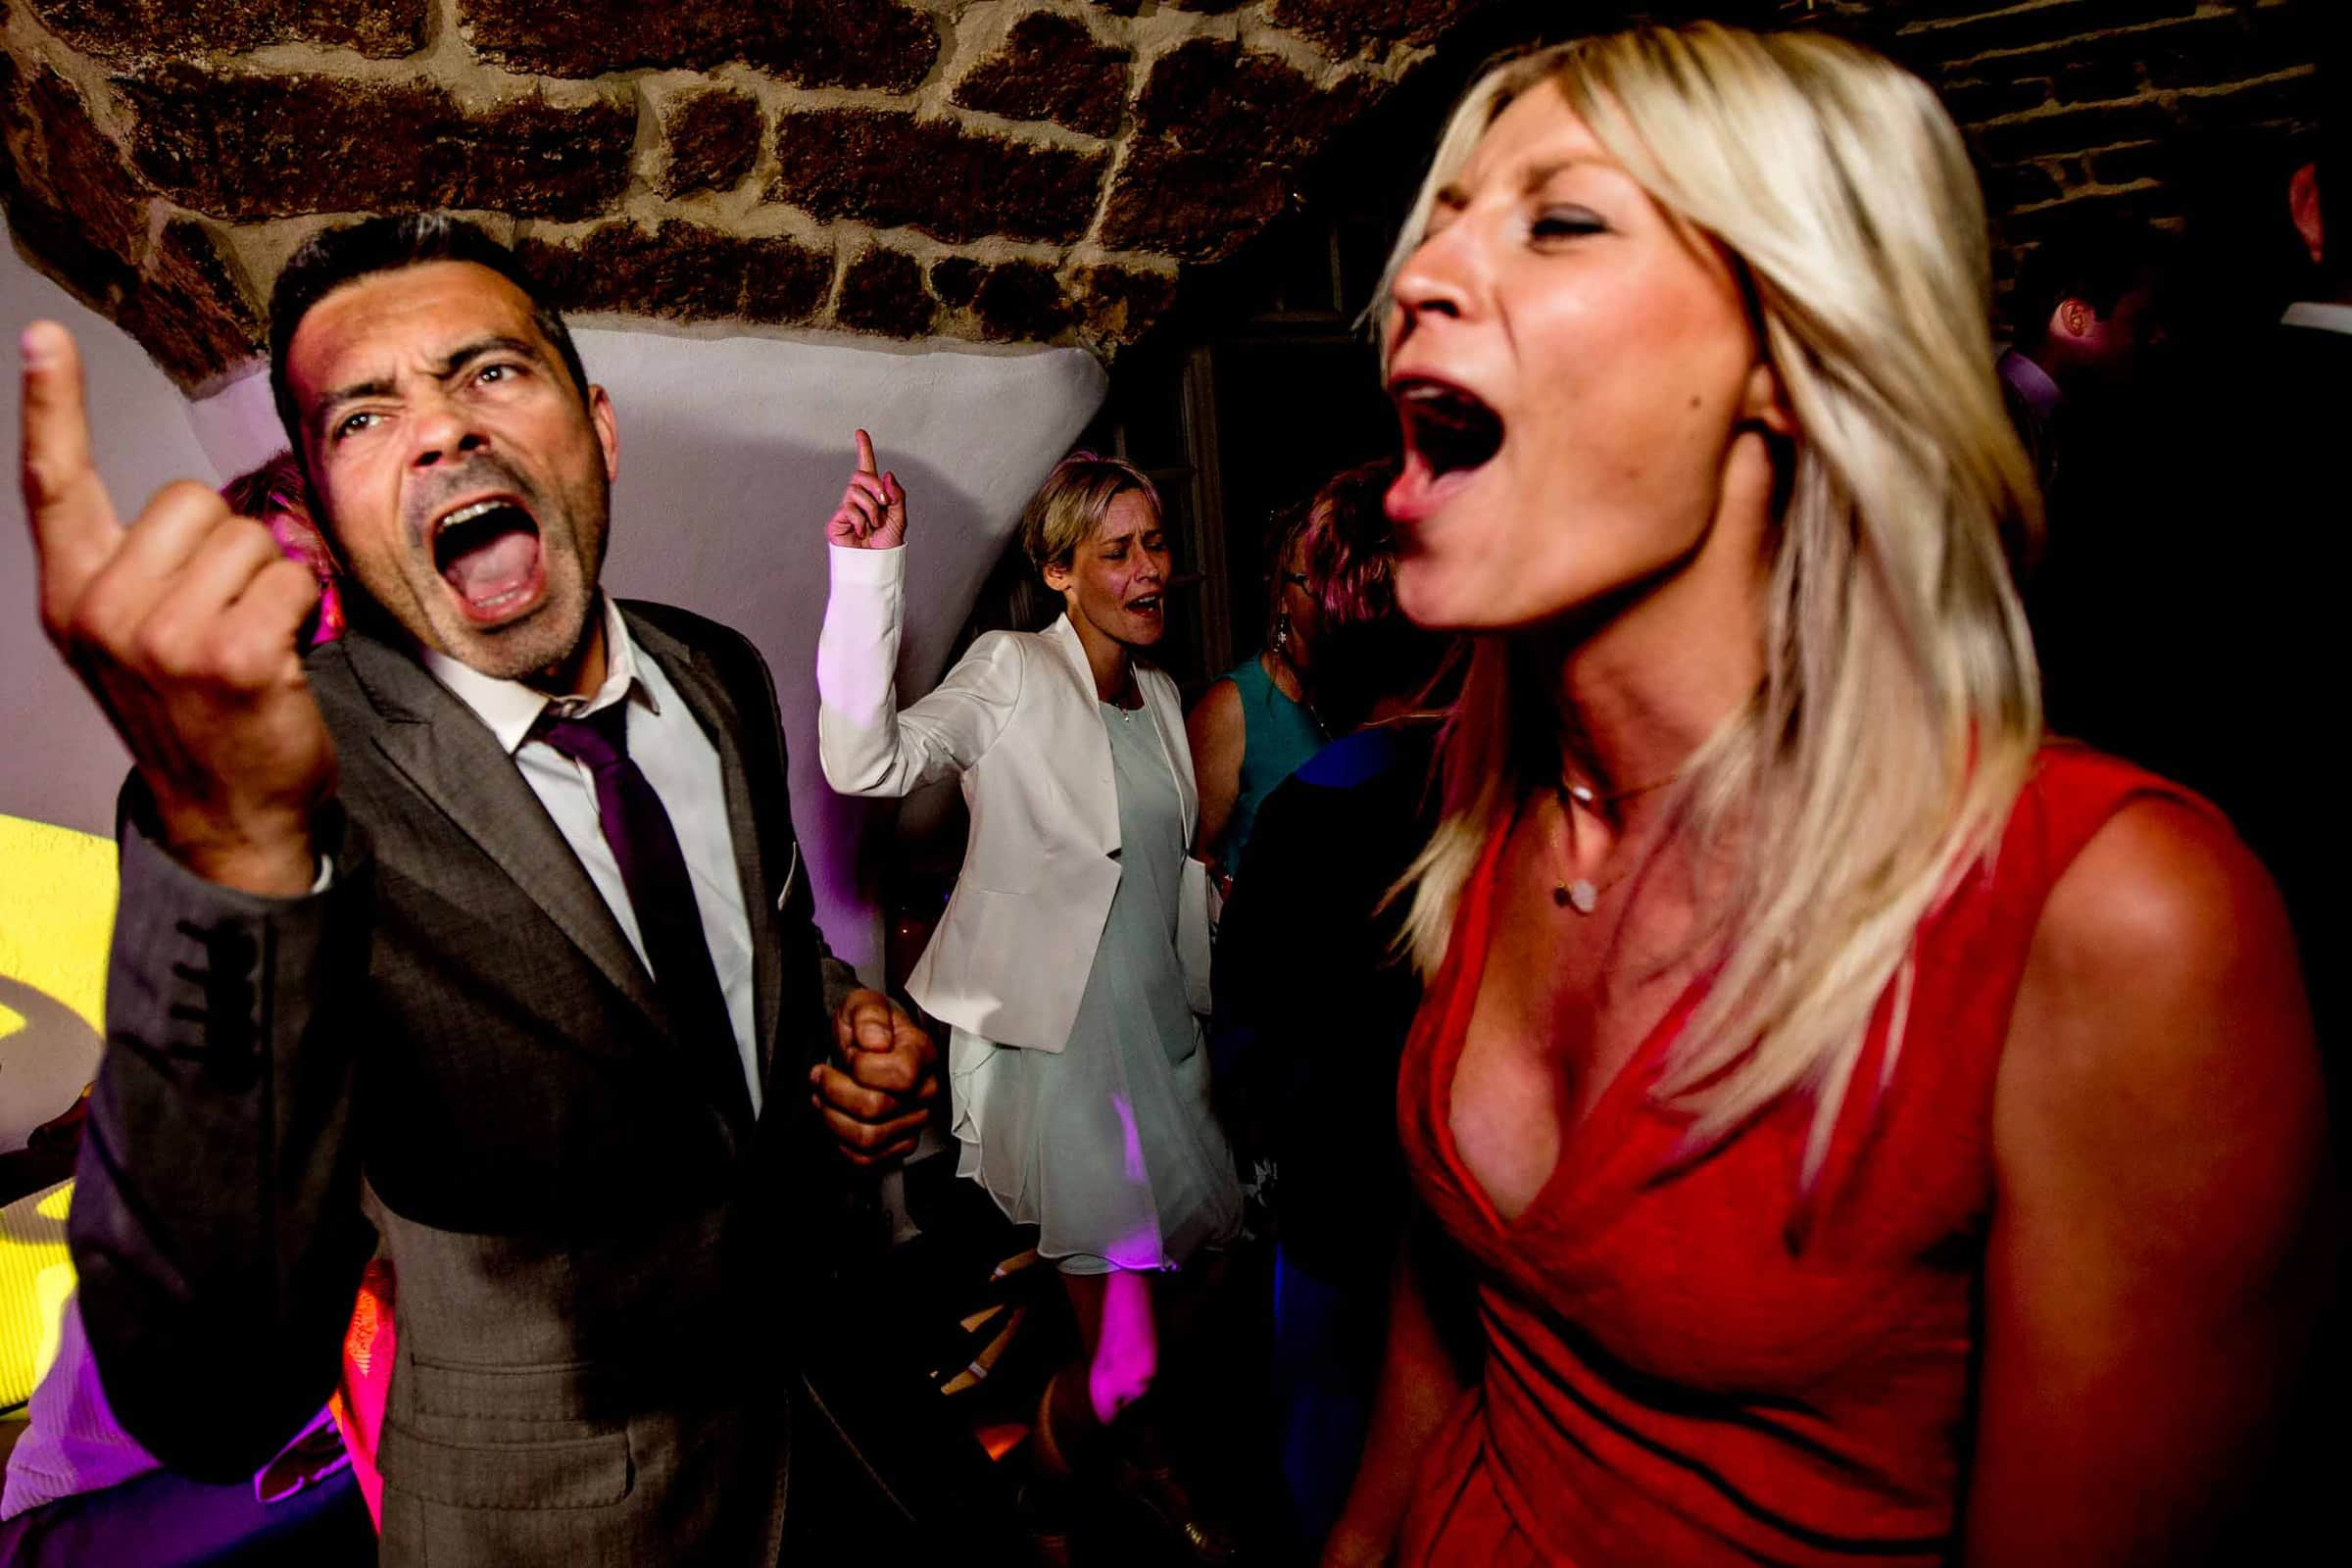 Happy guests partying late into the night at a Chateau Zen wedding in the South of France near Montepelier.